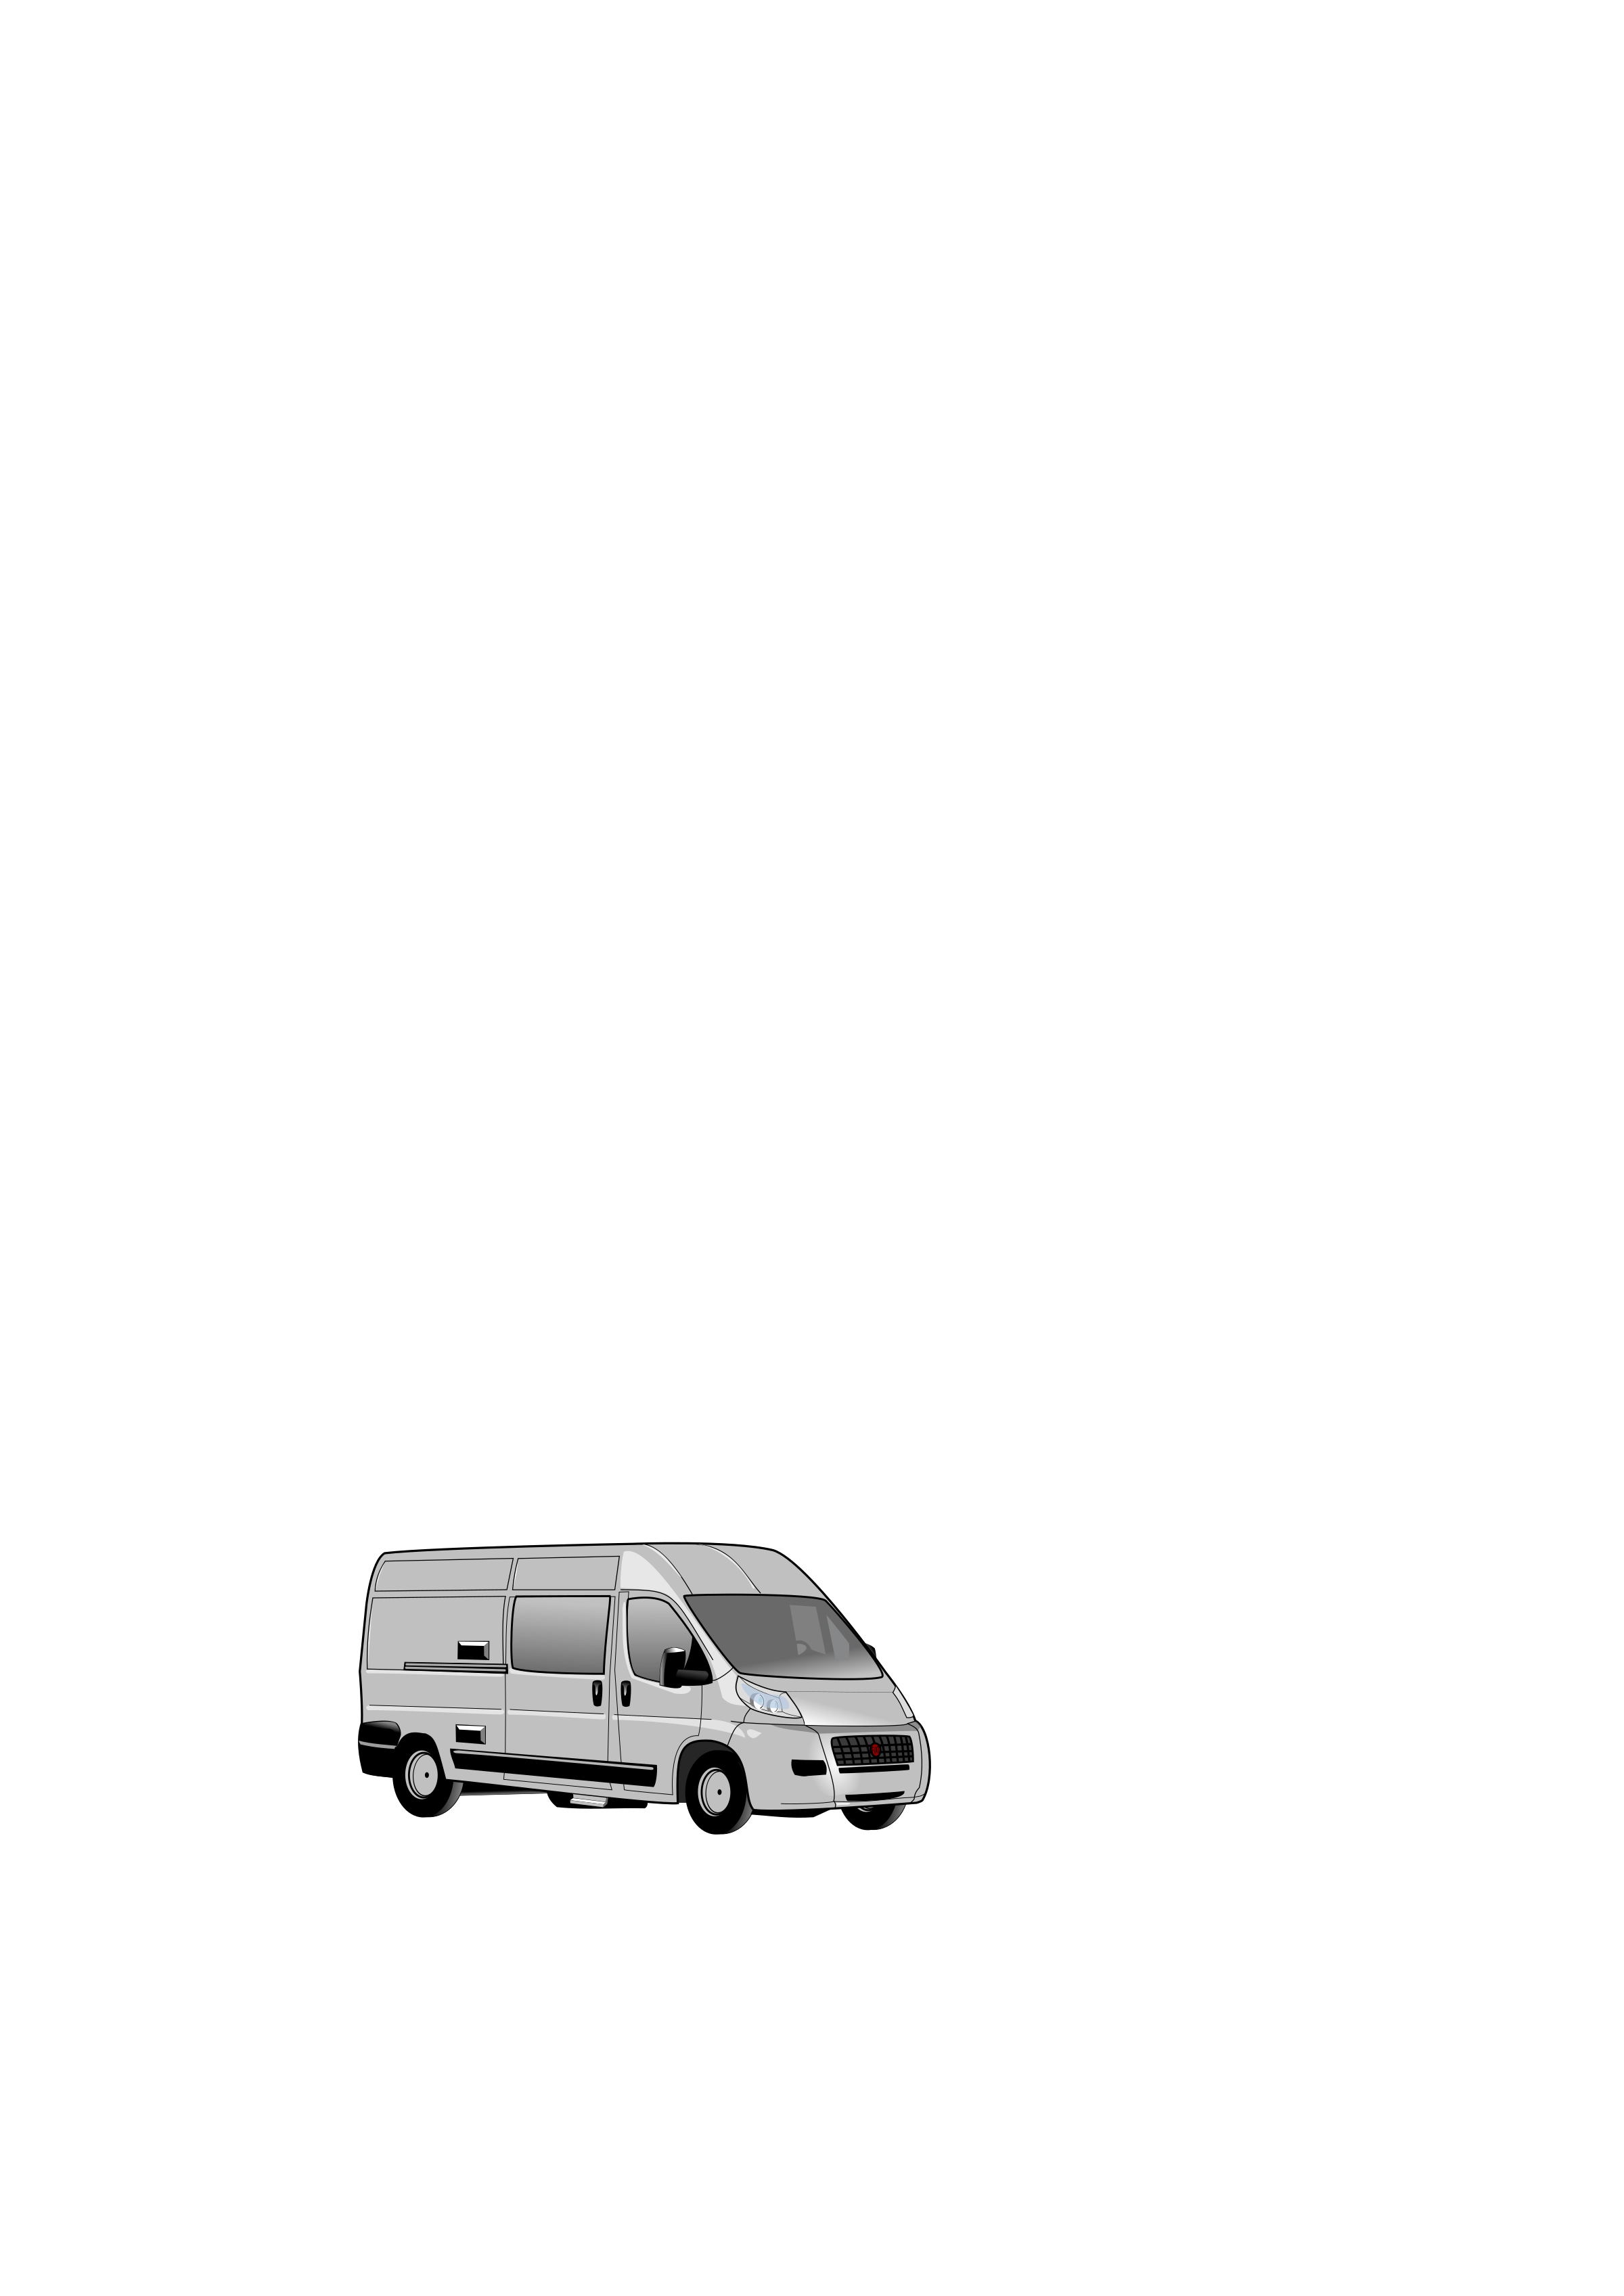 Ducato Van by we71jo